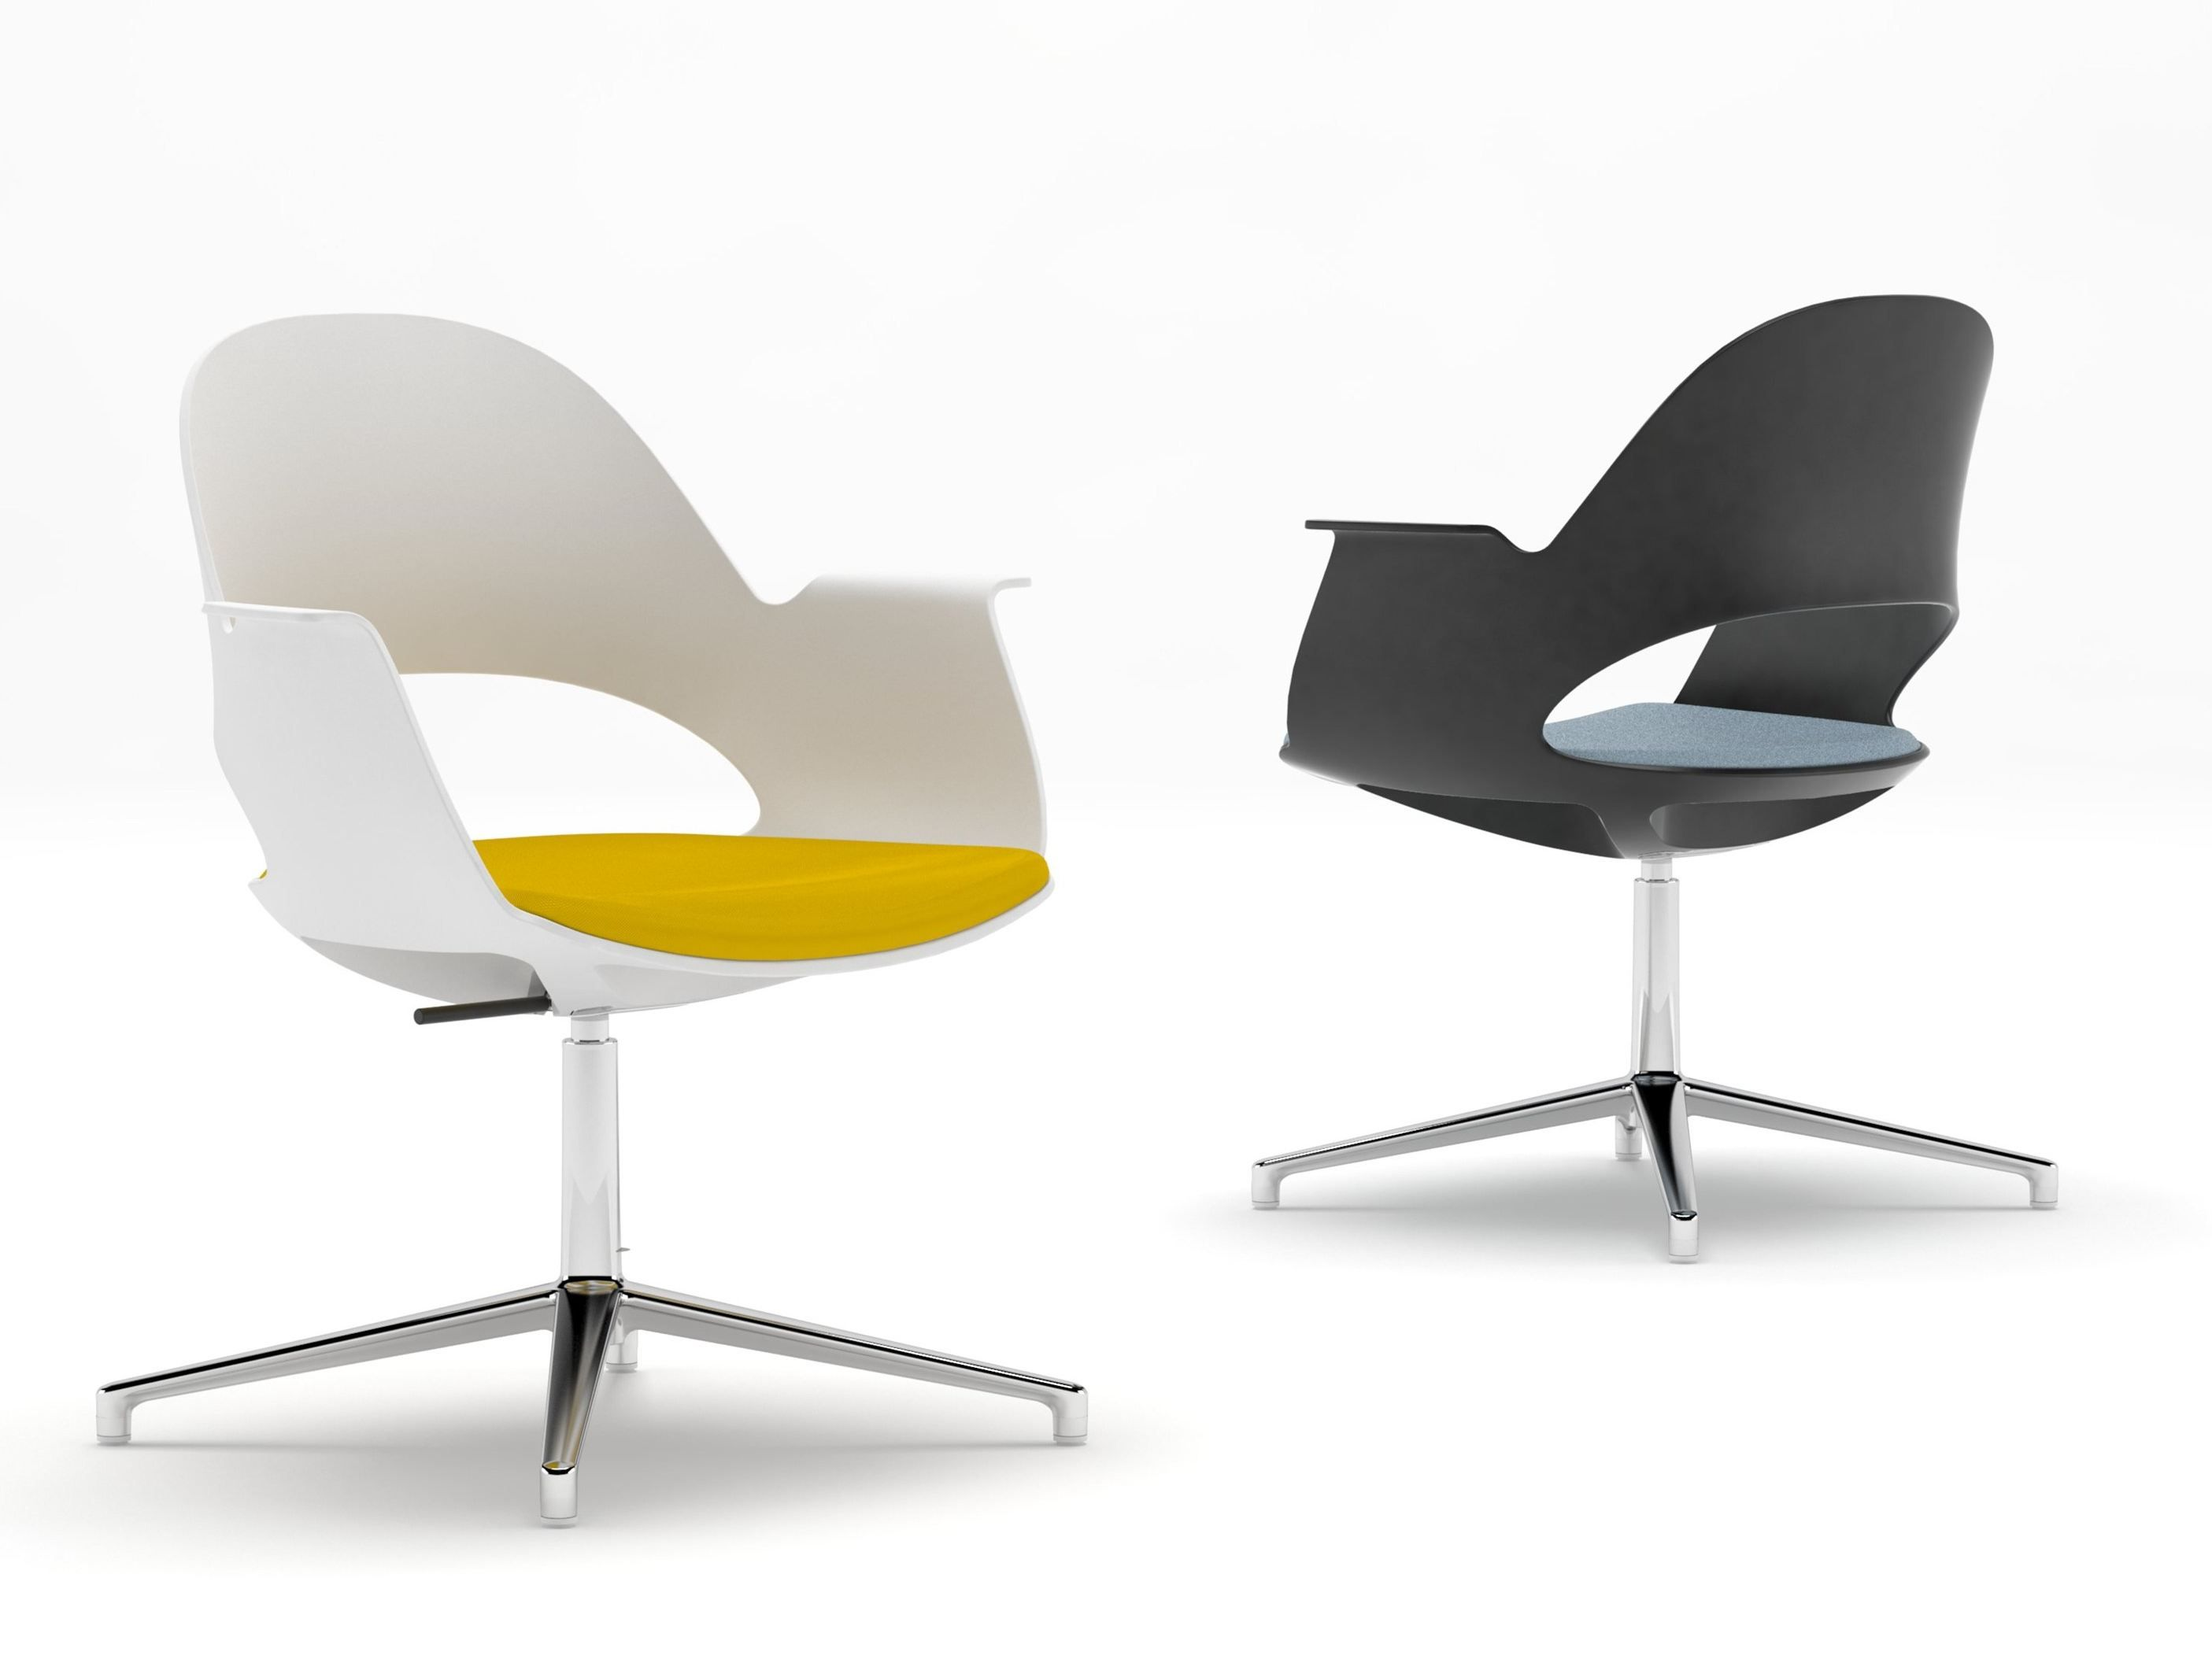 Height adjustable swivel chair ALAVA Waiting room chair by NURUS